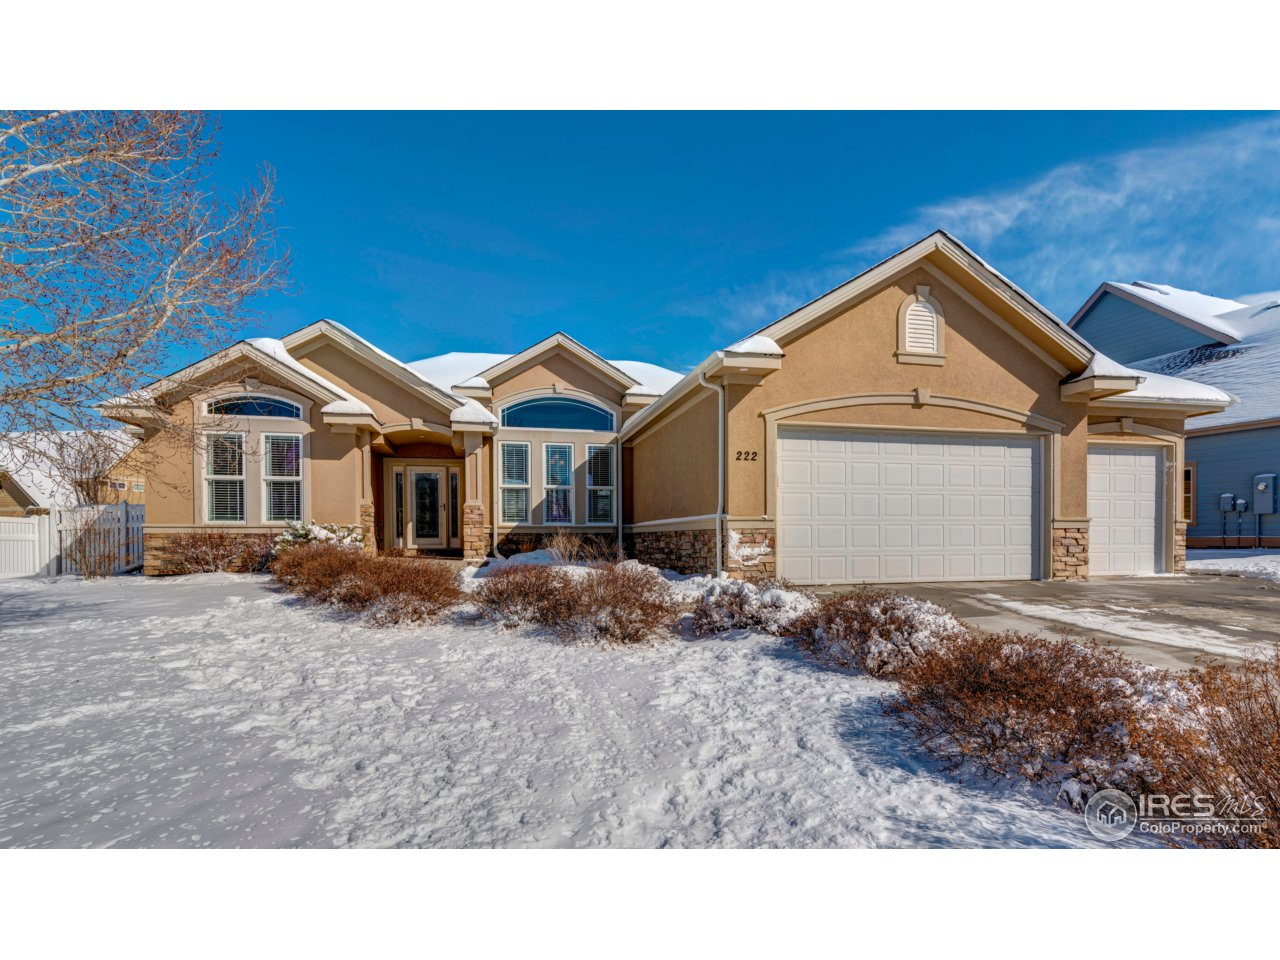 222 N 52nd Ave, Greeley CO 80634